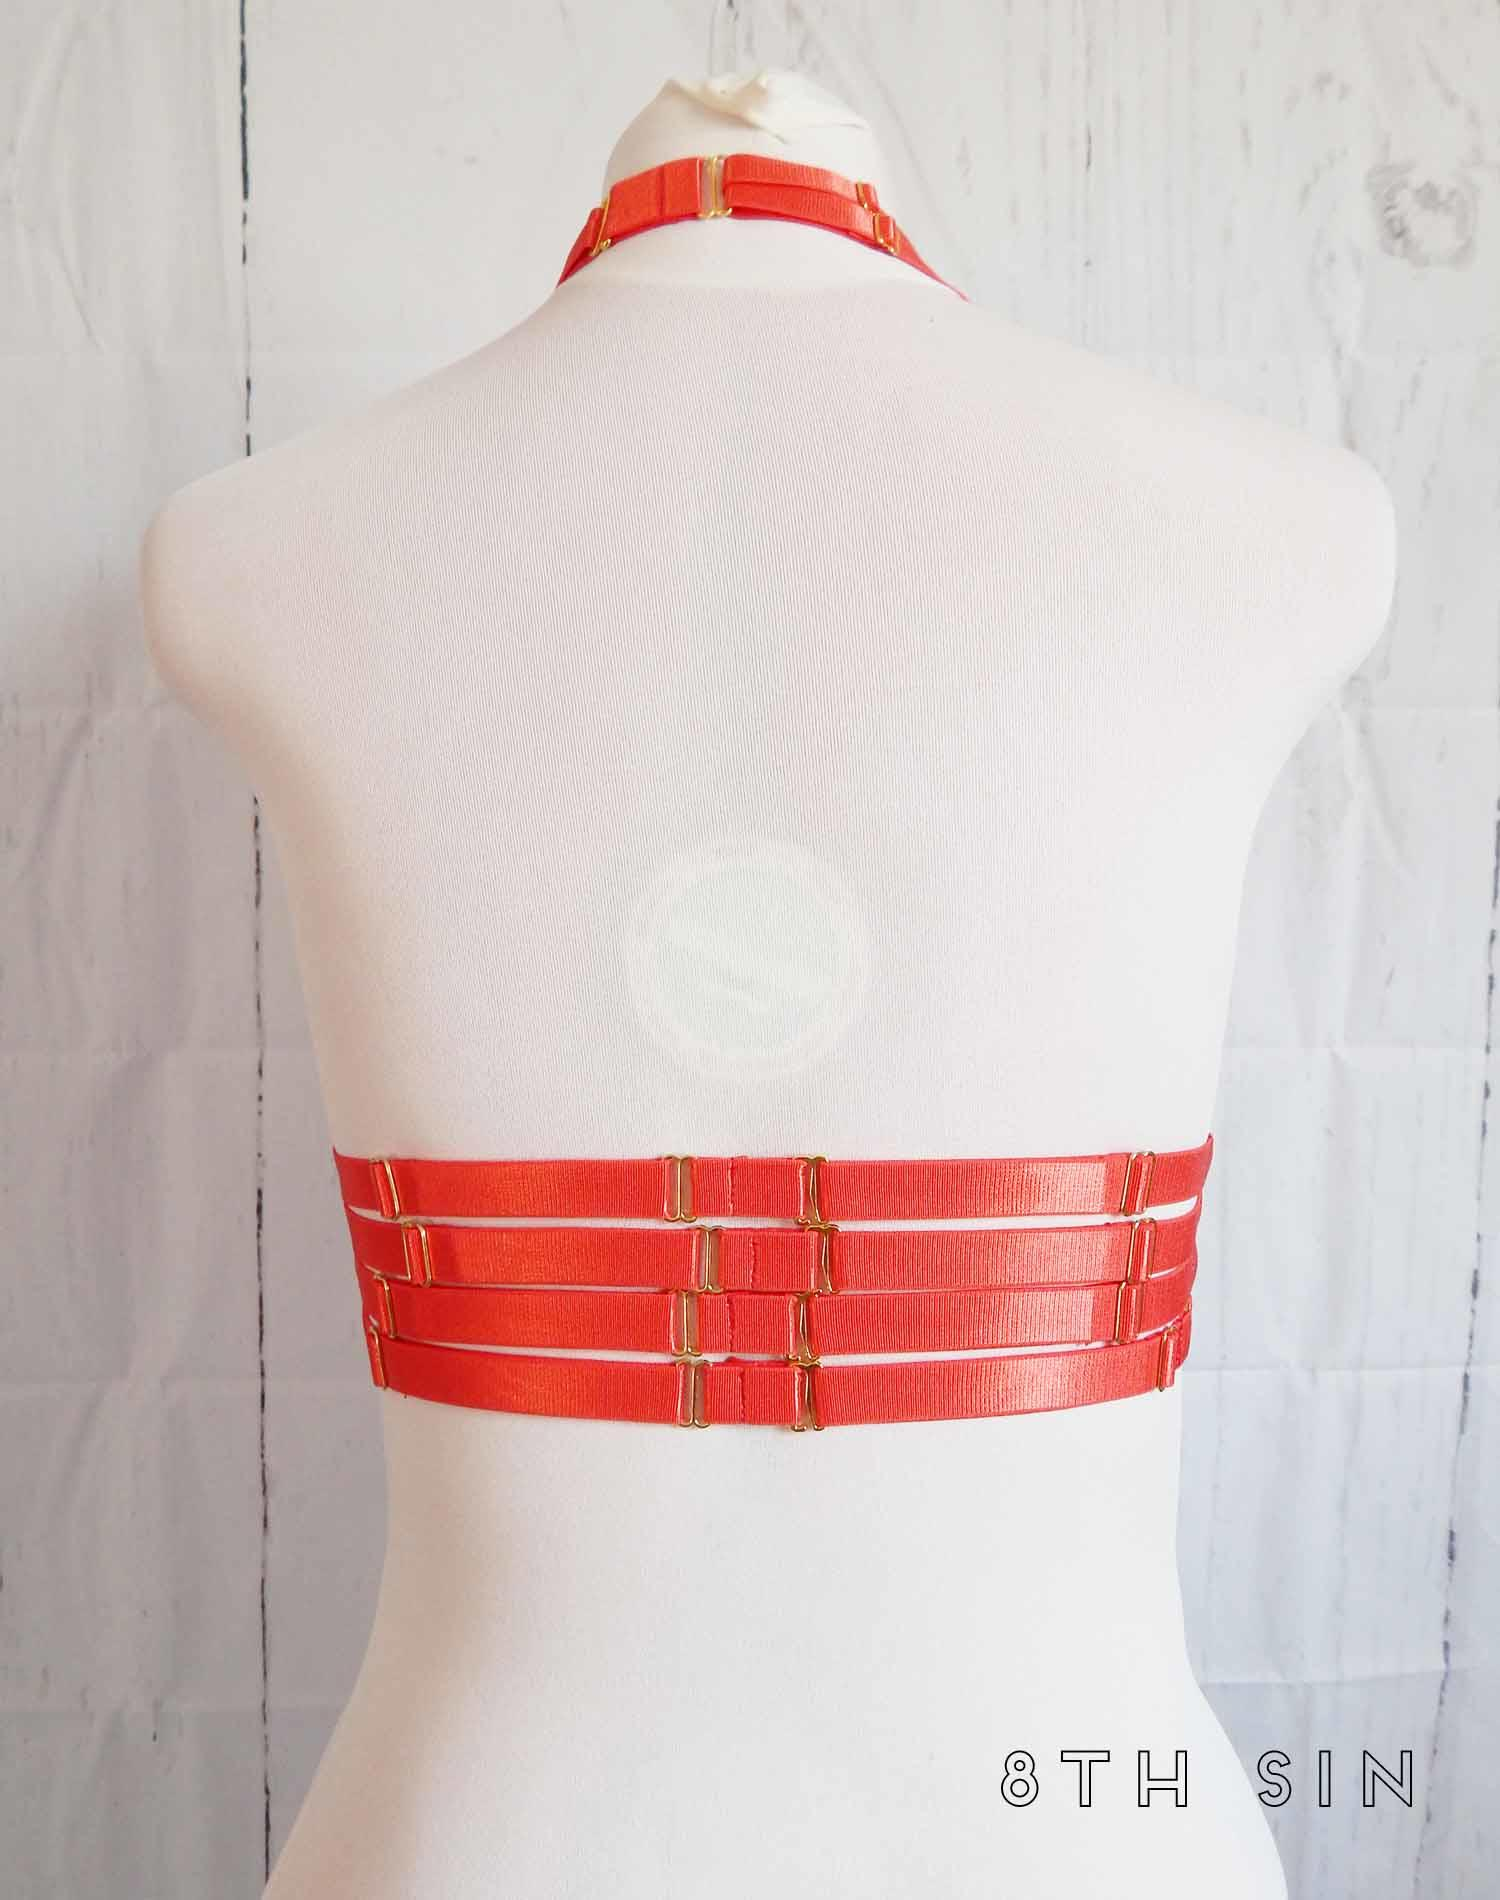 red elastic body harness